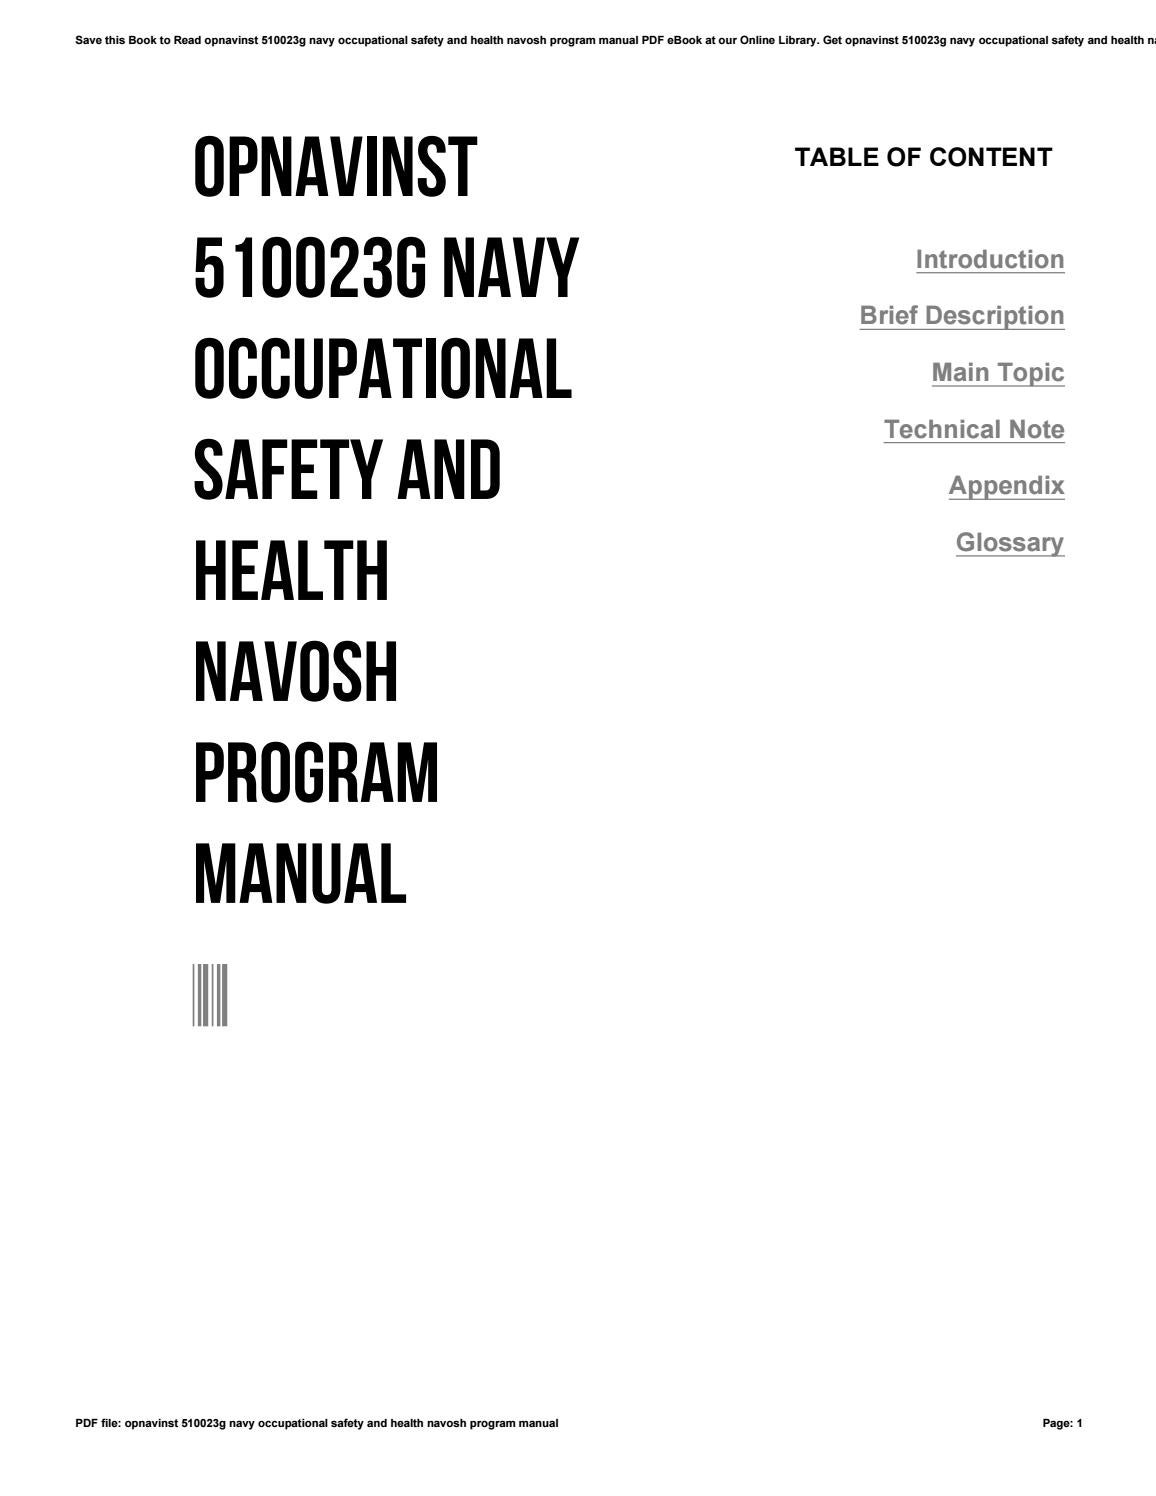 Opnavinst 510023g navy occupational safety and health